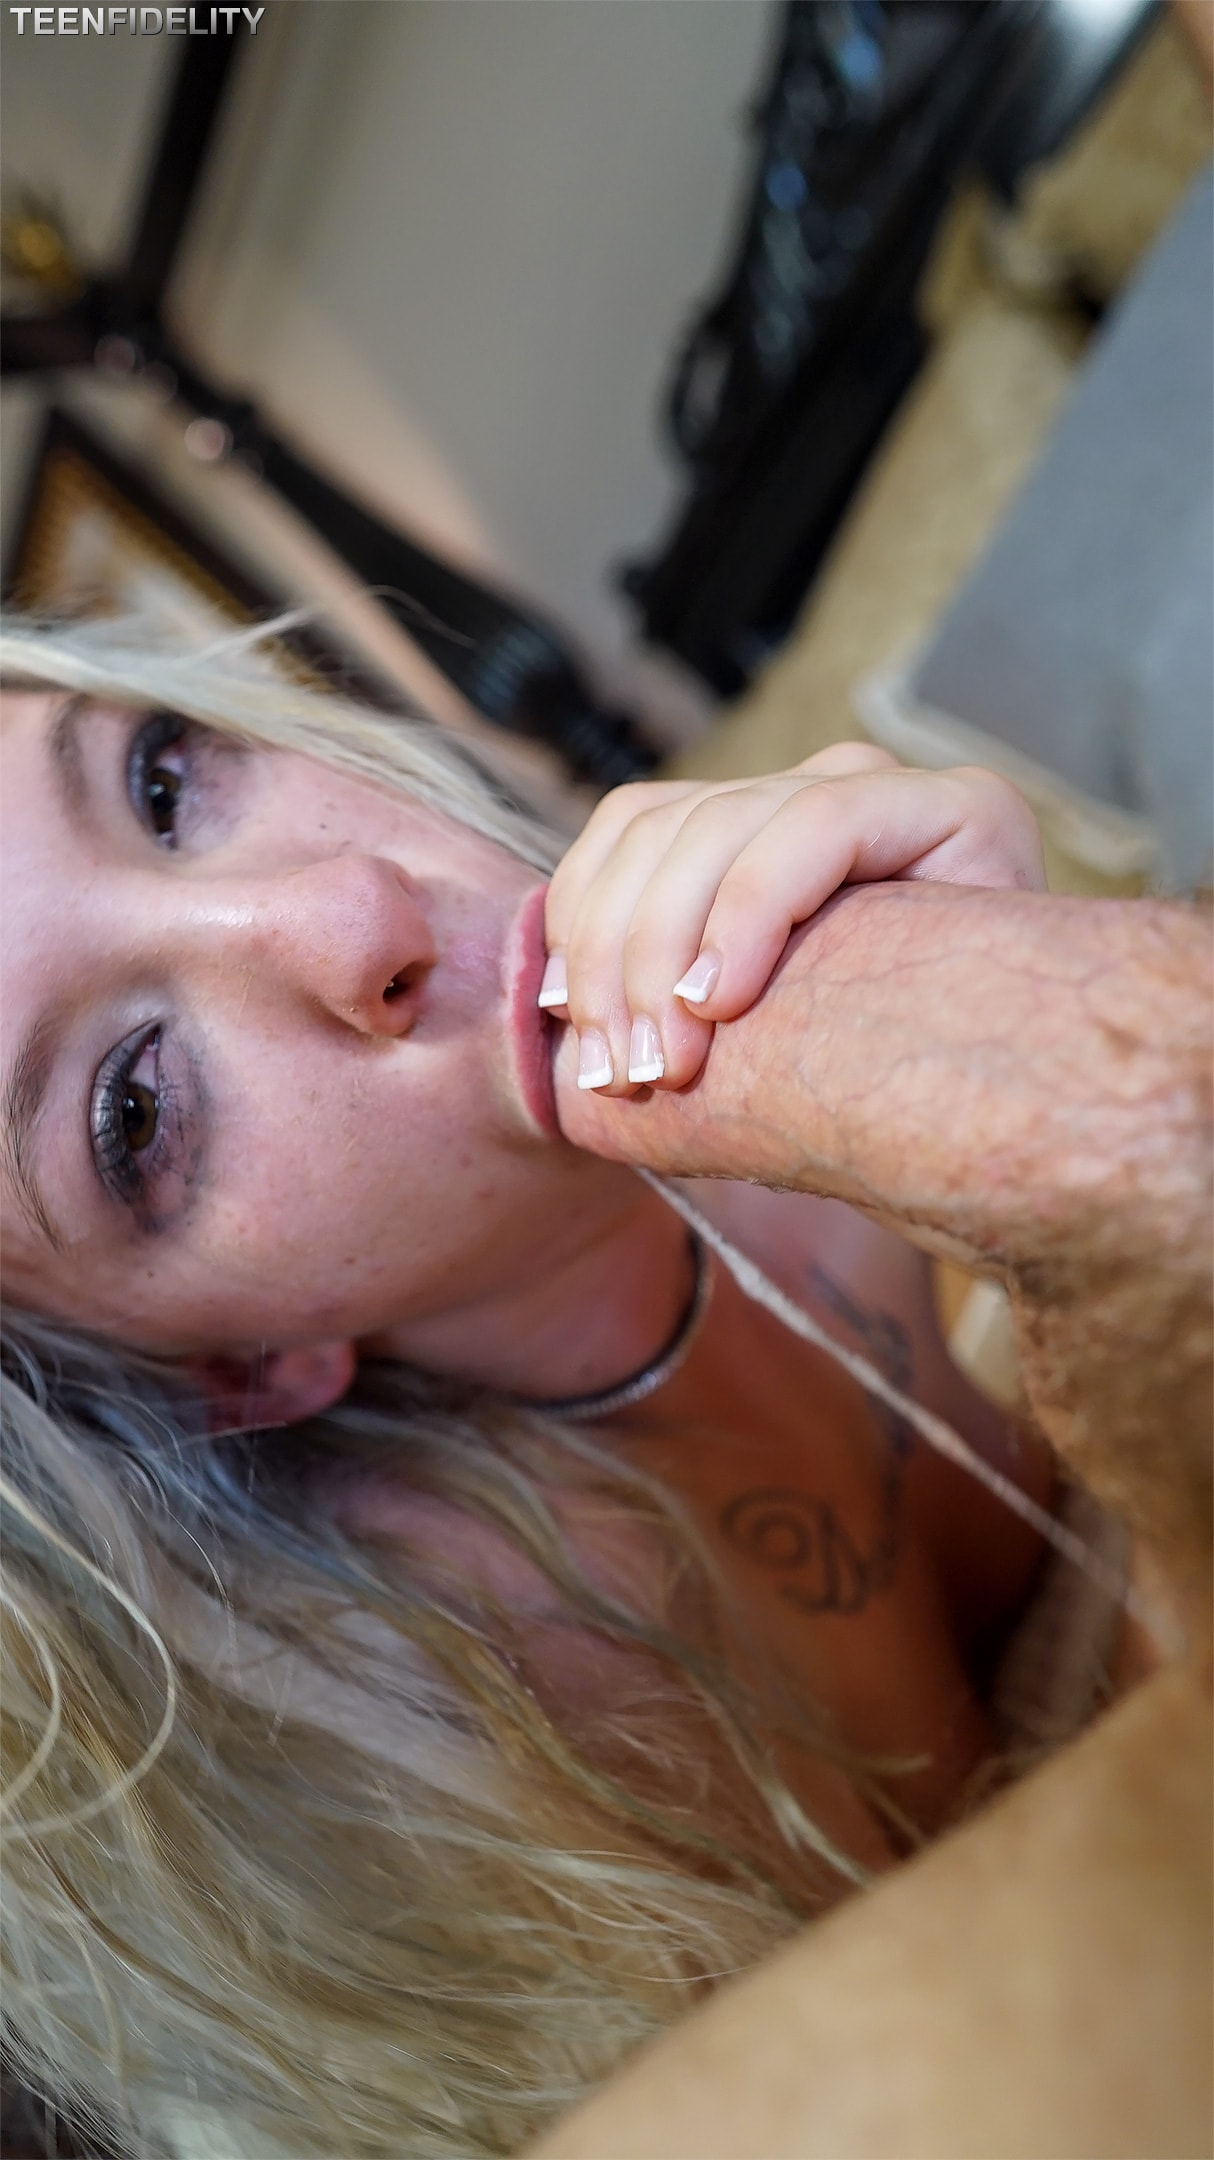 Kenzie reeves not for sale